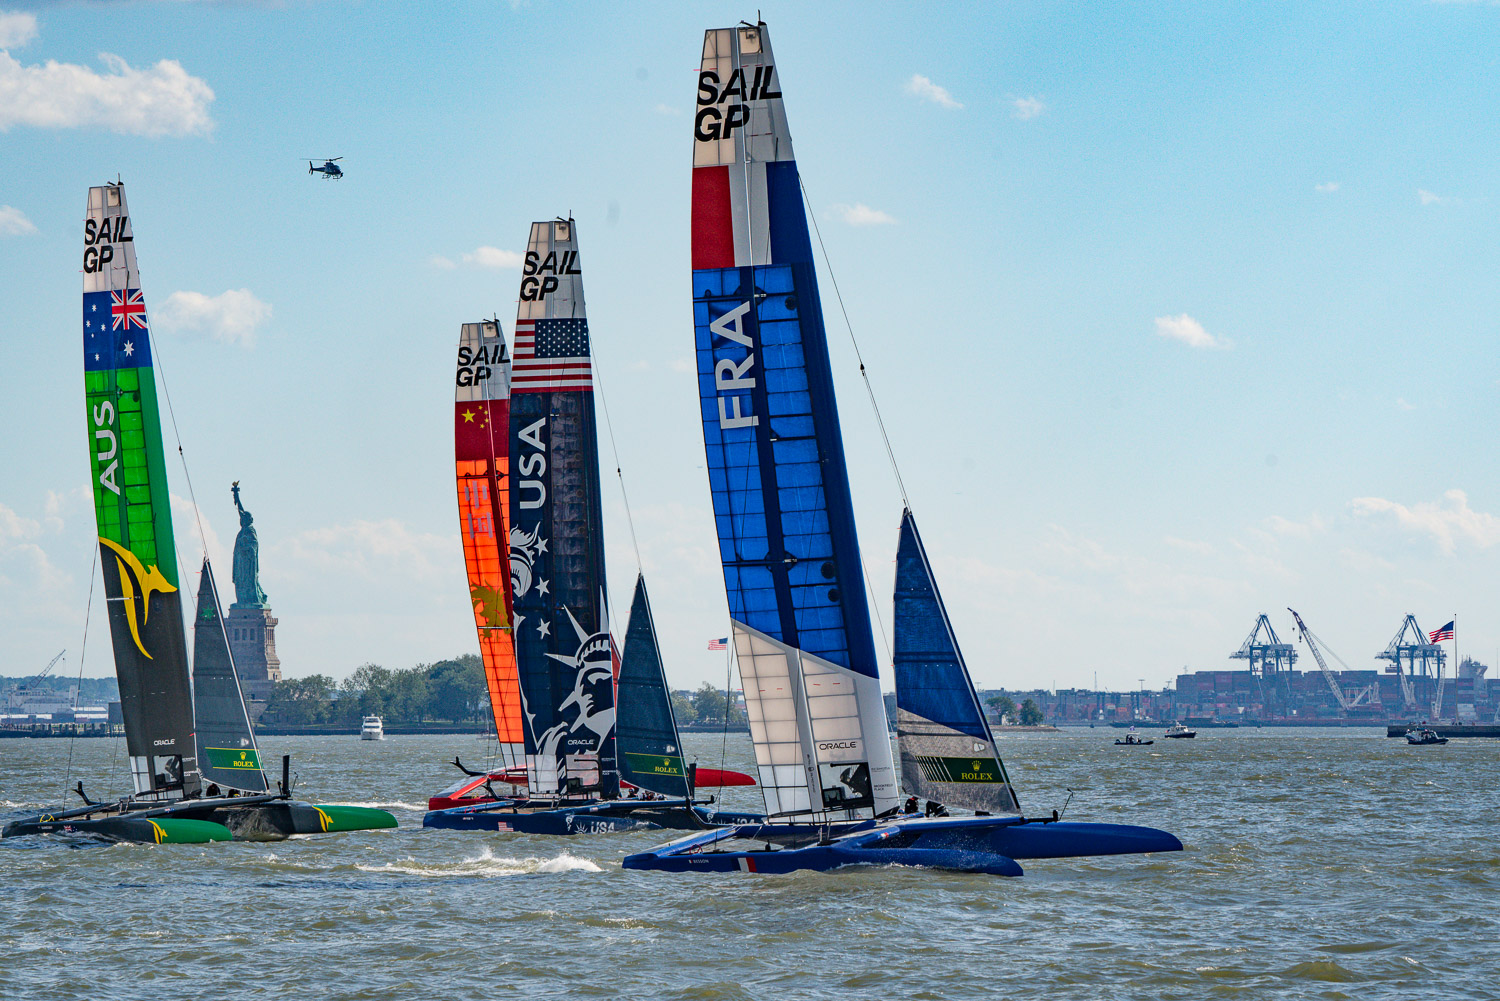 The sail GP boughts are in a tight race at this point. The statue of liberty sits in the background on the Hudson River.jpg